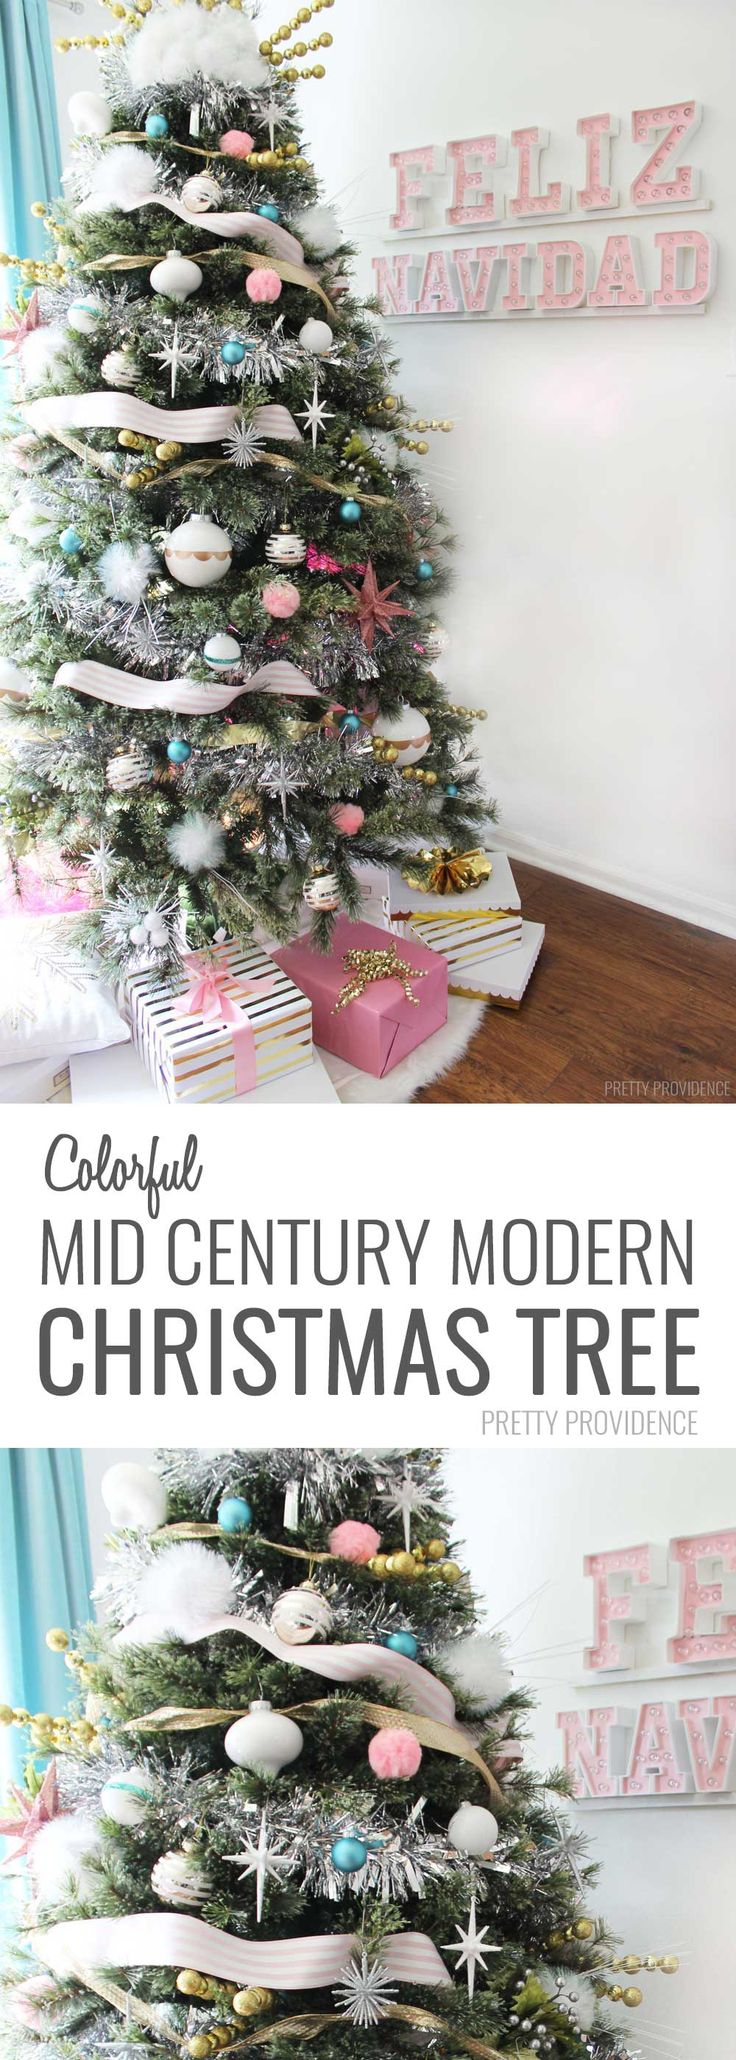 Oh WOW I love this modern colorful Christmas tree!!! And somehow literally everything is shatterproof and kid-friendly! YES! MichaelsMakers